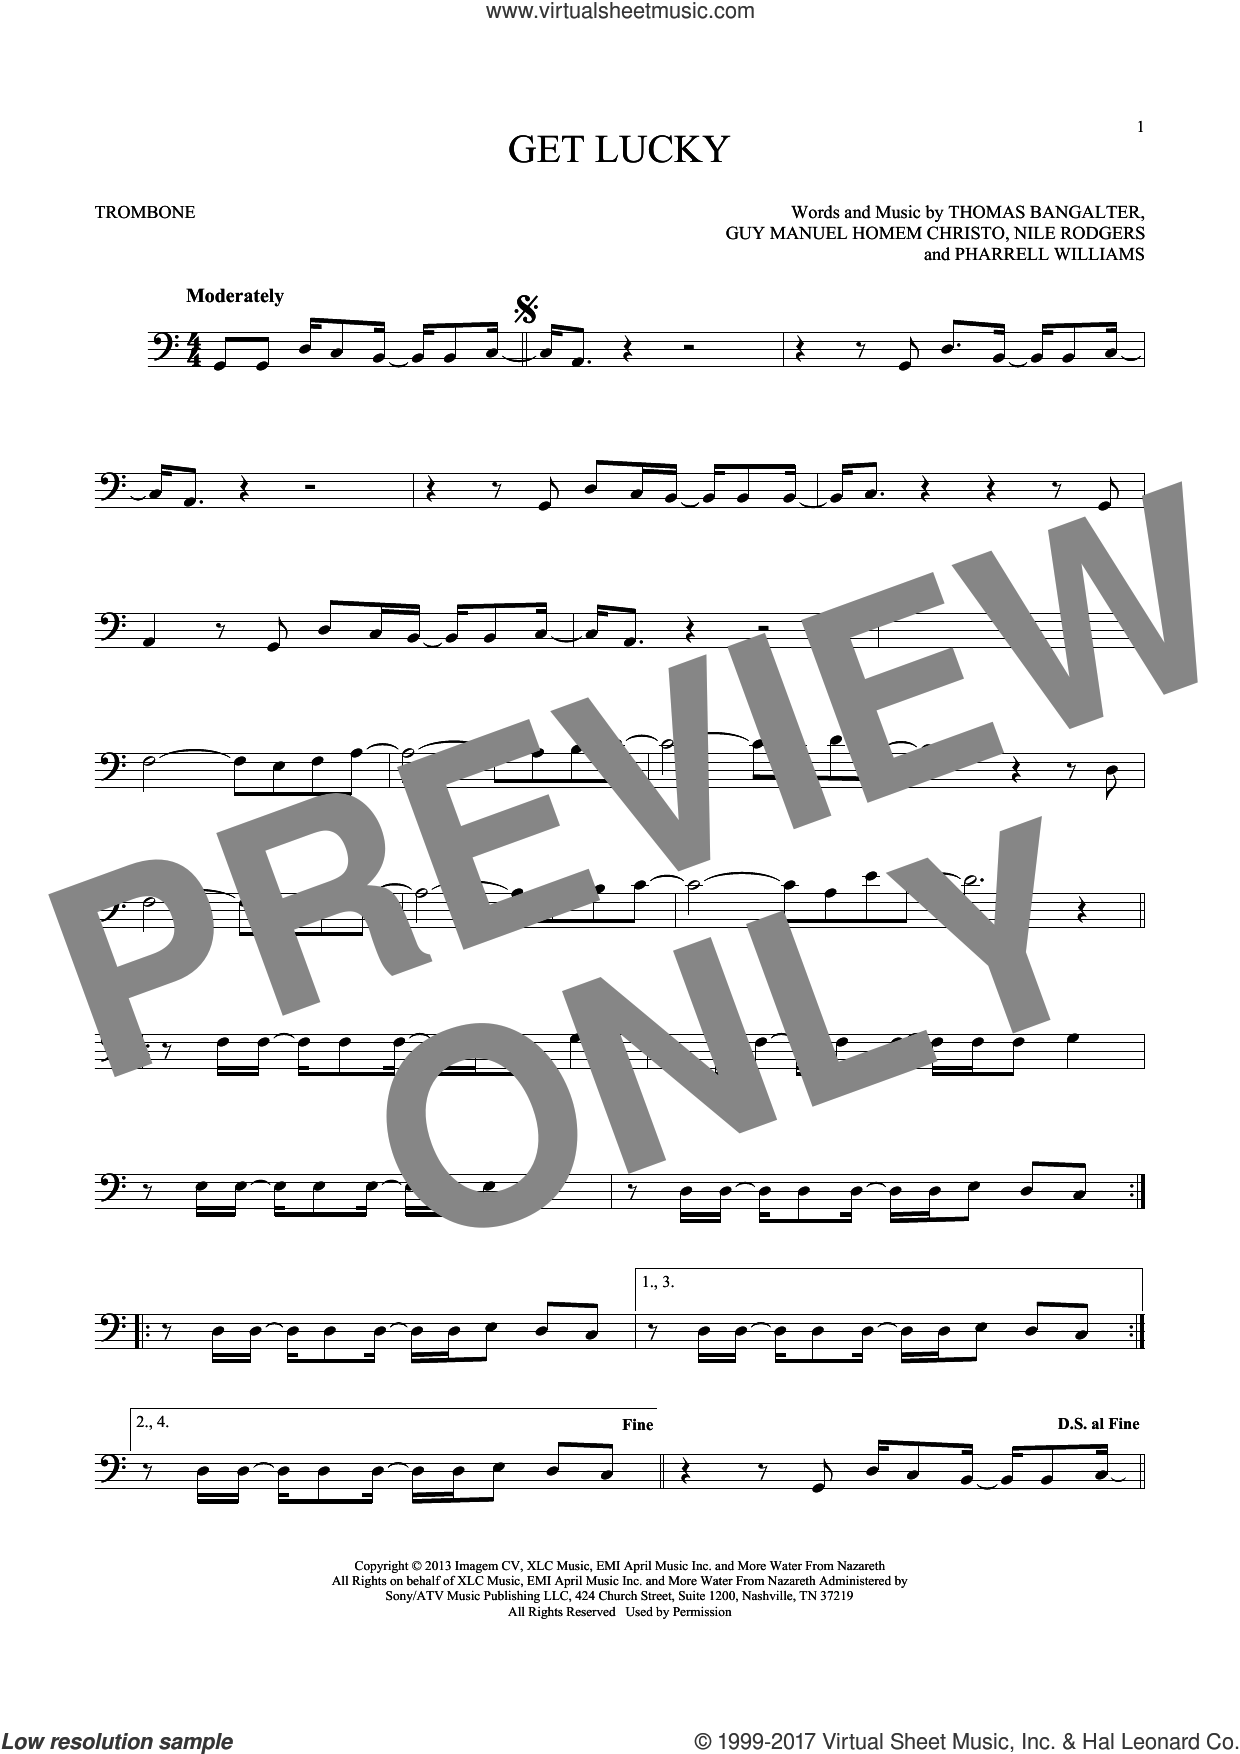 Get Lucky sheet music for trombone solo by Thomas Bangalter, Daft Punk Featuring Pharrell Williams, Nile Rodgers and Pharrell Williams. Score Image Preview.